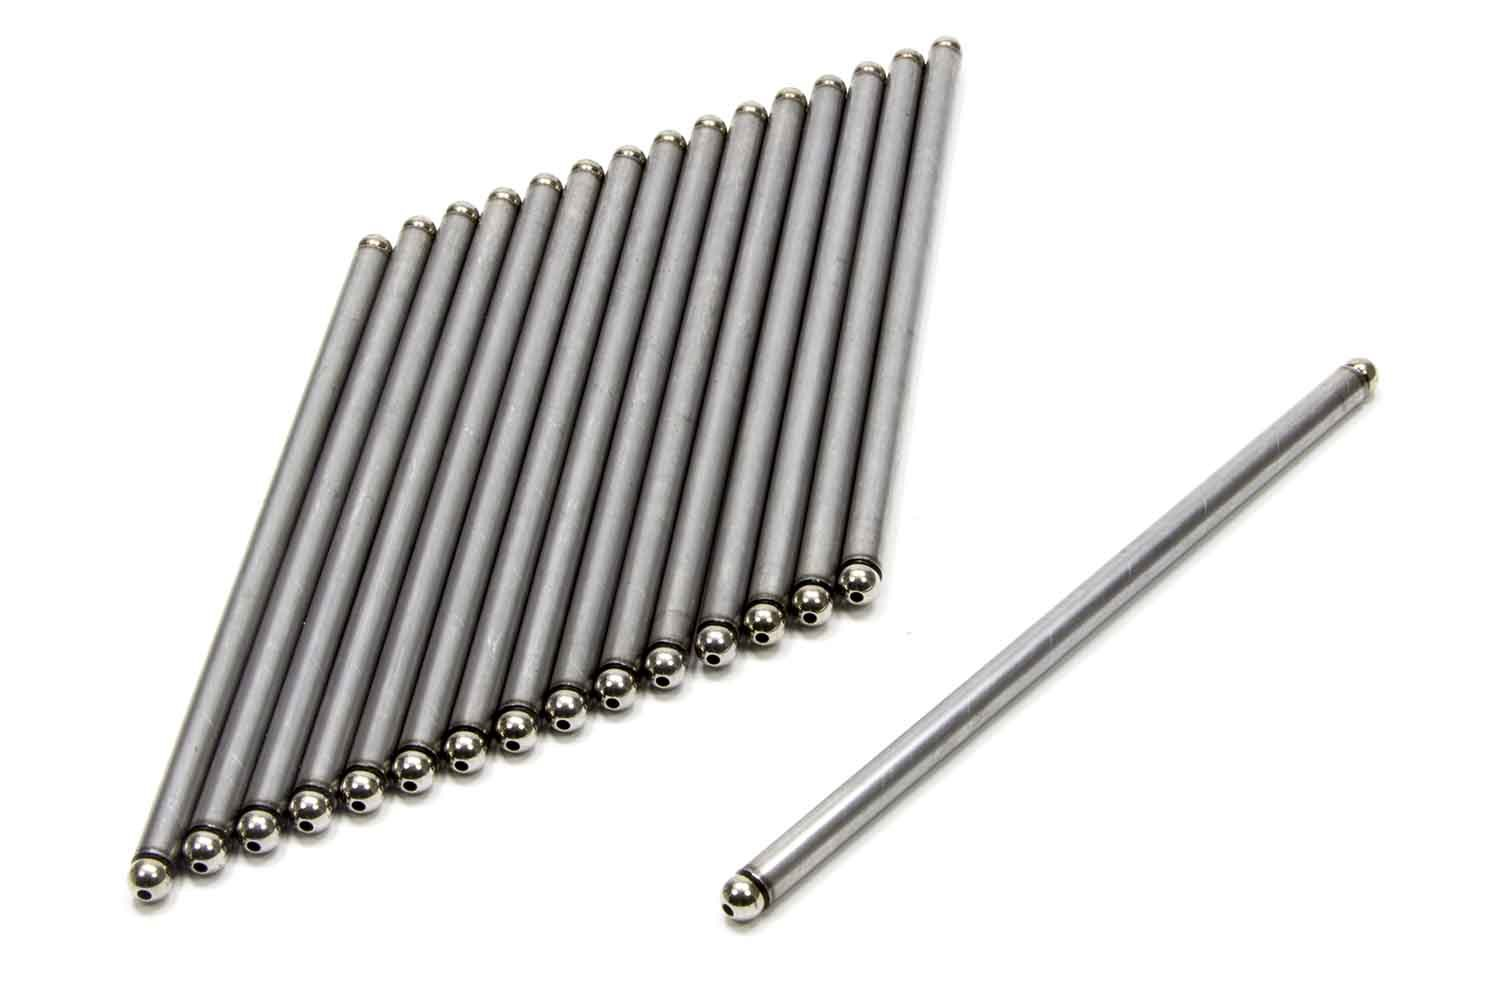 CHEVROLET PERFORMANCE 5/16 Pushrods (16) 7.122 Long